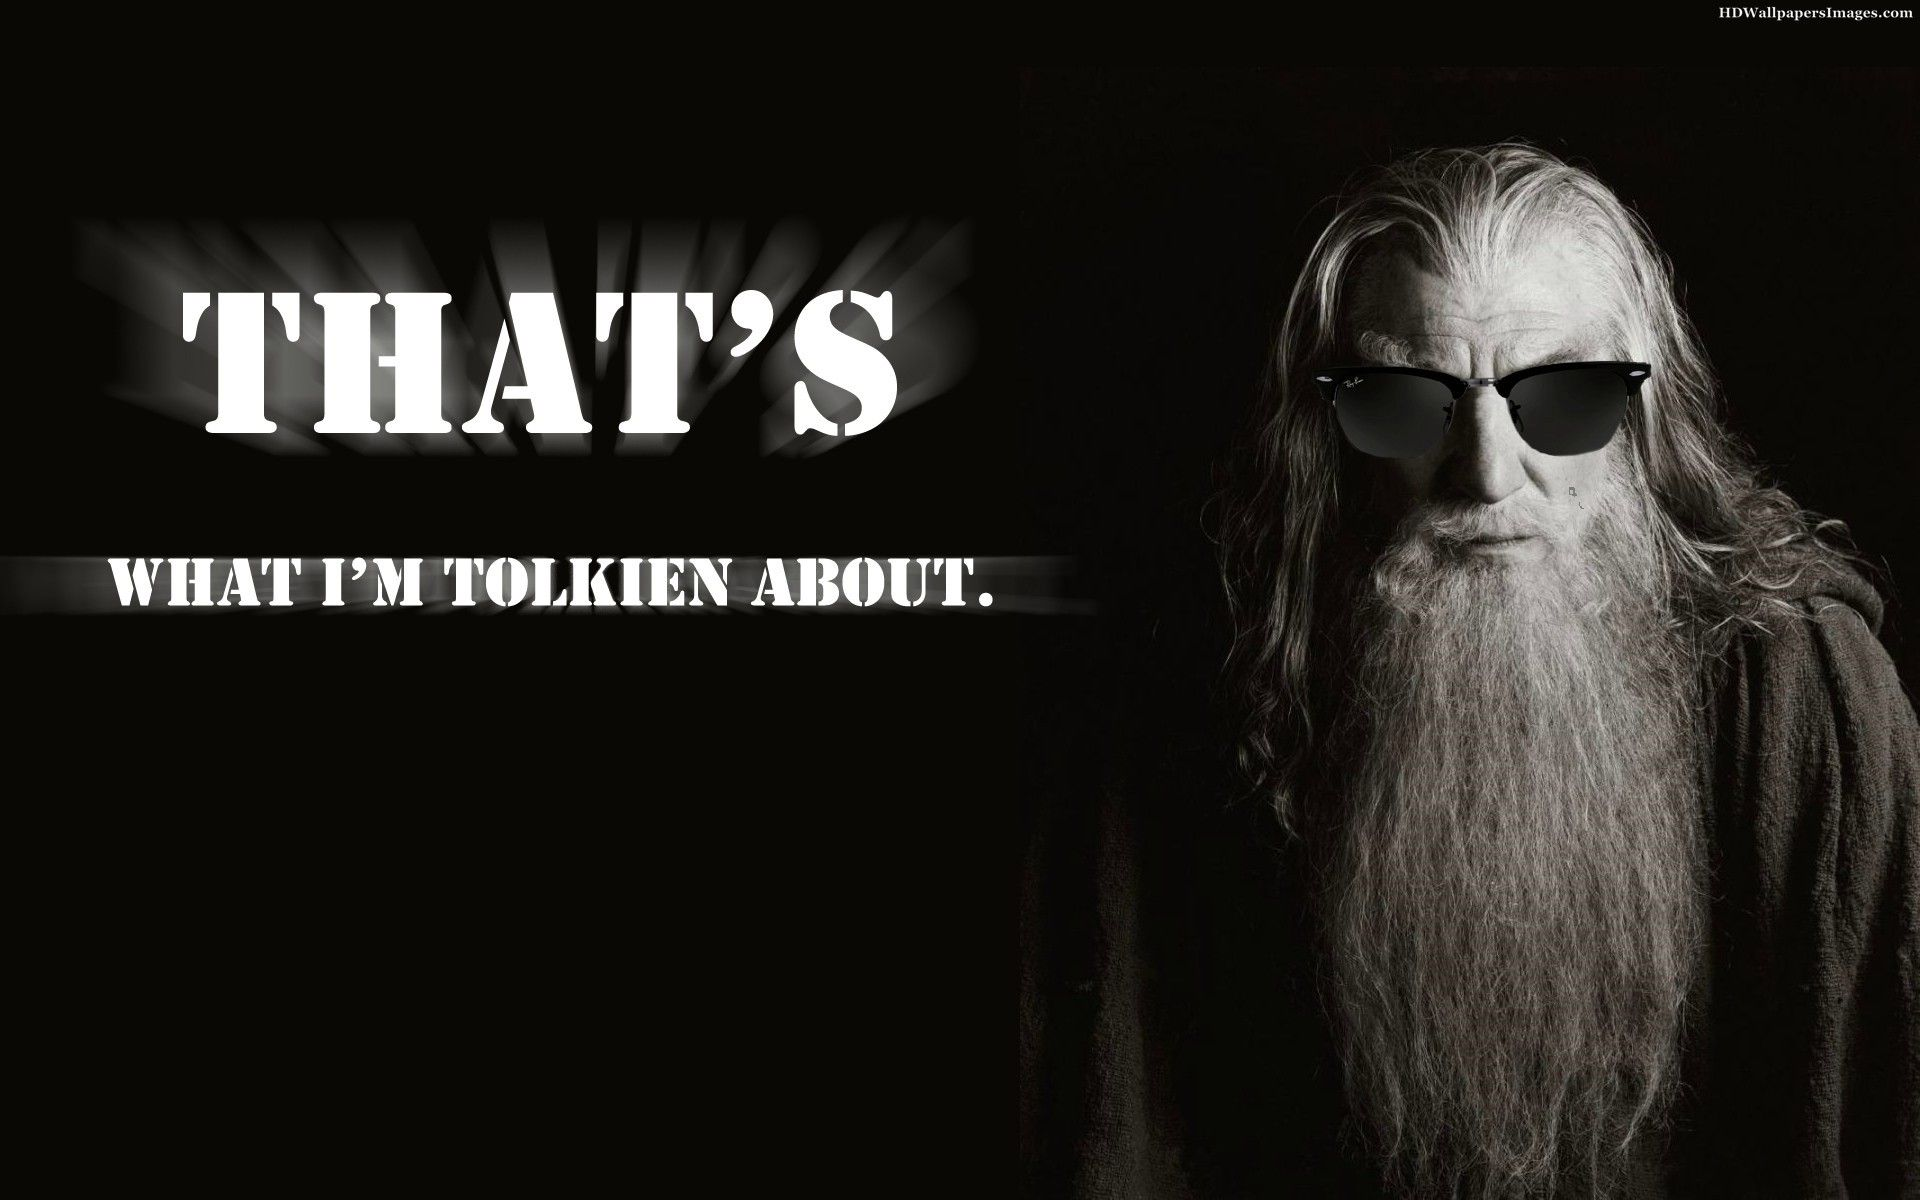 Lord Of The Rings Gandalf Quotes Meme Images Pictures Photos Hd Wallpapers Hobbit Lustig Tolkien Zitate Gandalf Zitate